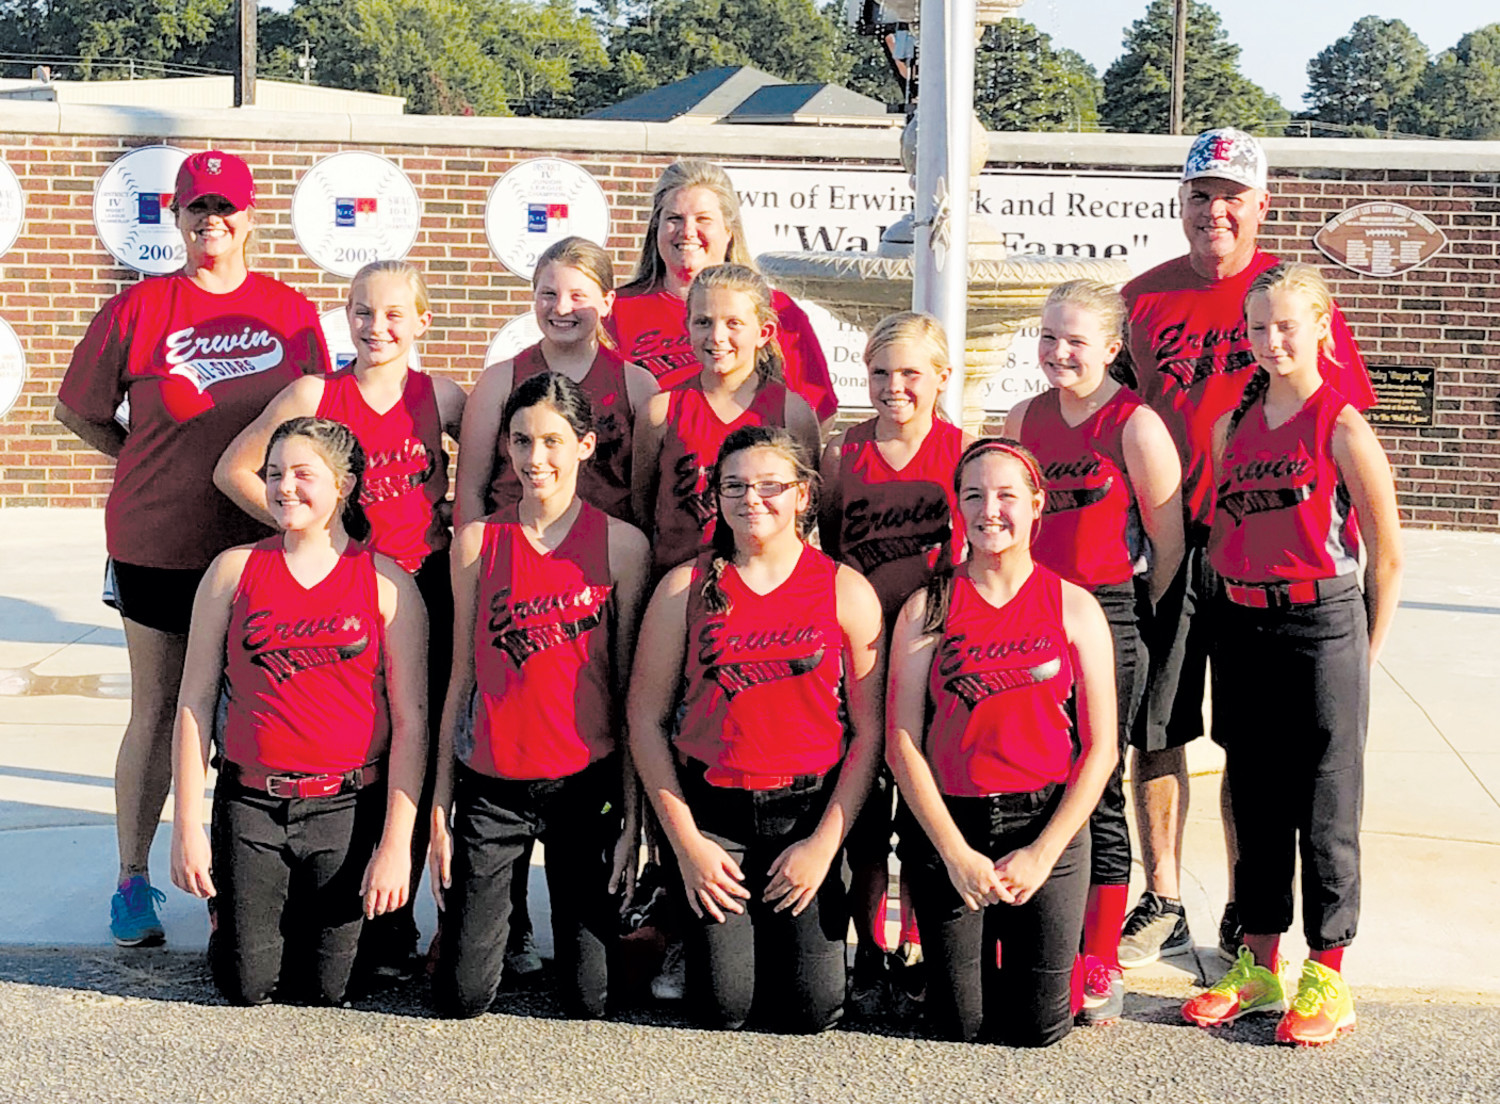 The Erwin Tar Heel 12U Softball All-Stars played yesterday in the District IV championship game against Western Harnett. They are, bottom row, from left, Baylee Reagan, Carleigh Hemby, Sabrina Black and McKenna Moore. Top row, from left, are Reese Penny, Madelyn Parker, Camryn Conway, Jenna Underwood, Whitni Royal and Lexi Davis. (Not pictured is Ashari Watlington.) Erwin All-Star coaches are, from left, Toni Hall, Misty Parker and head coach Wayne Underwood. They lost their first tournament game on Tuesday night to Western Harnett, 15-9.